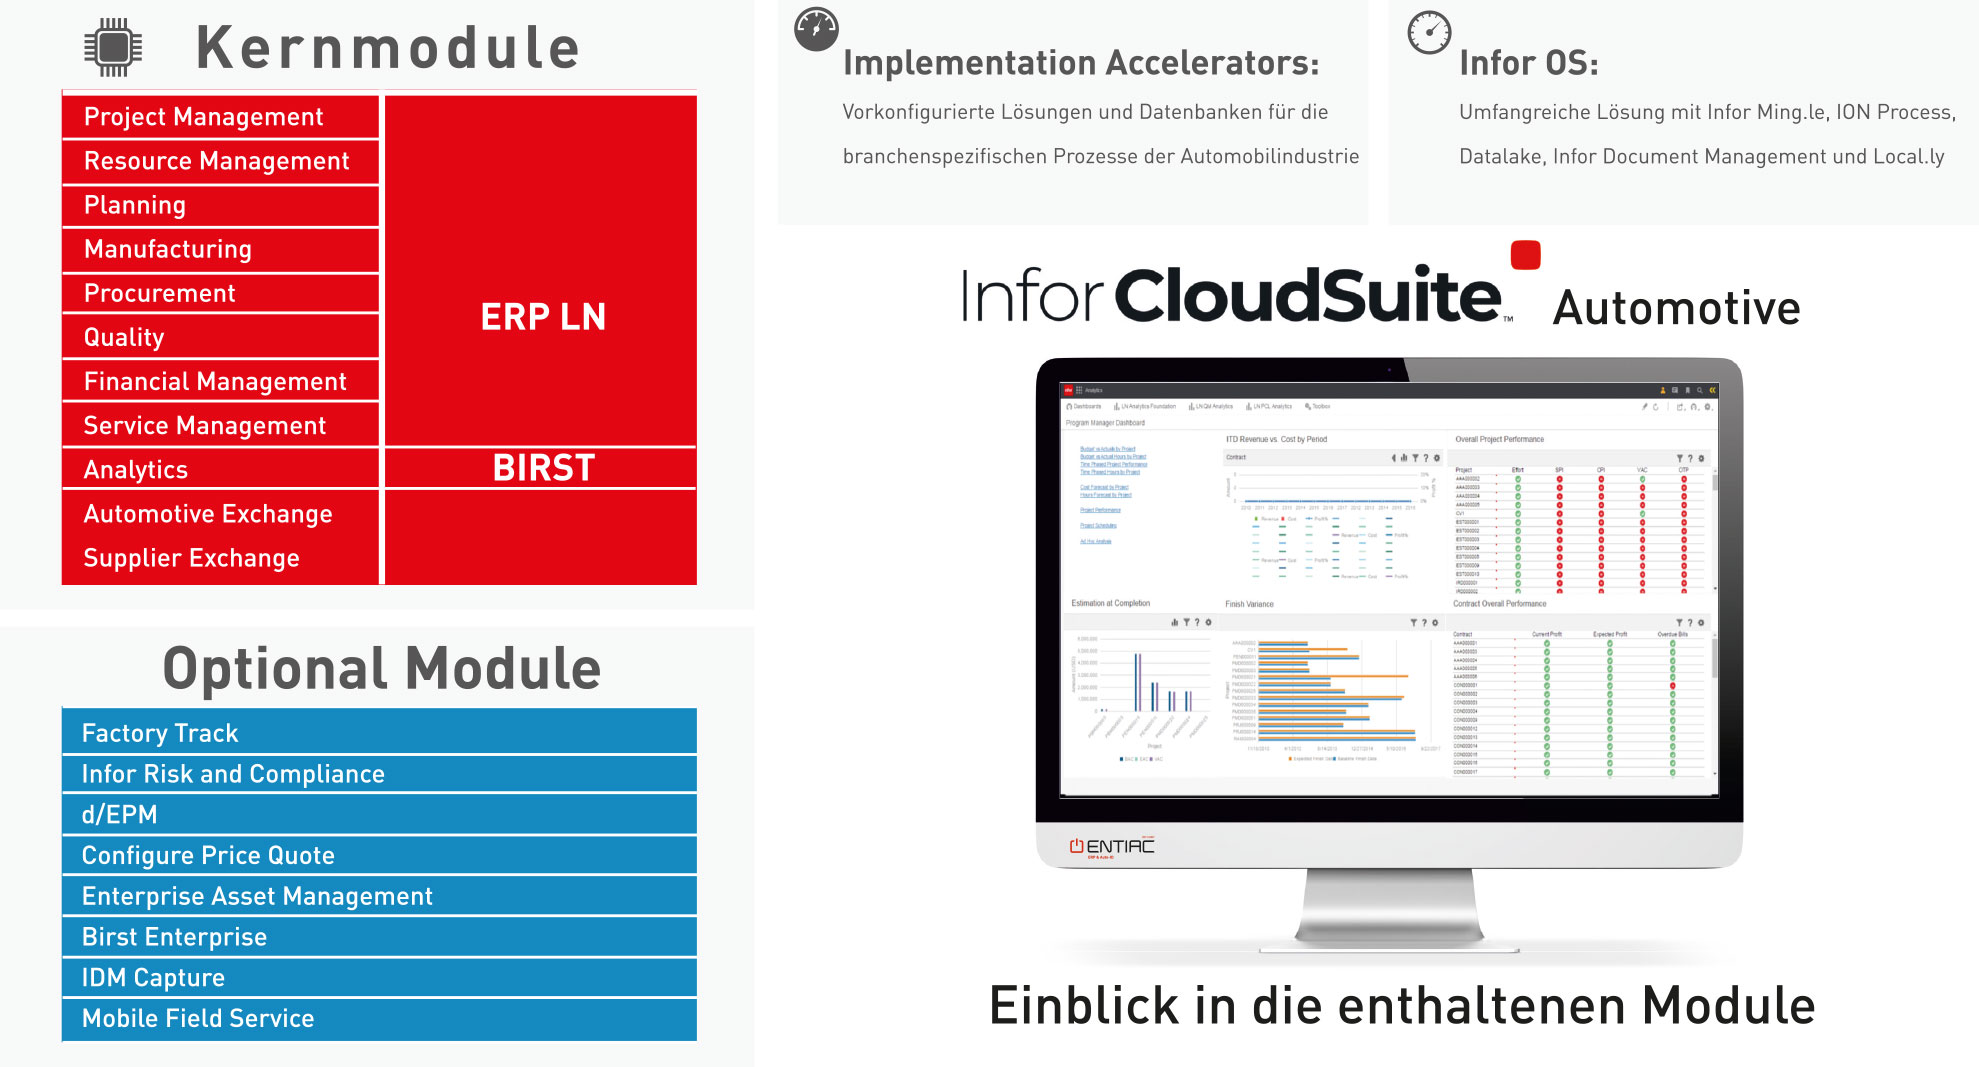 Infor CloudSuite Automotive Modulübersicht